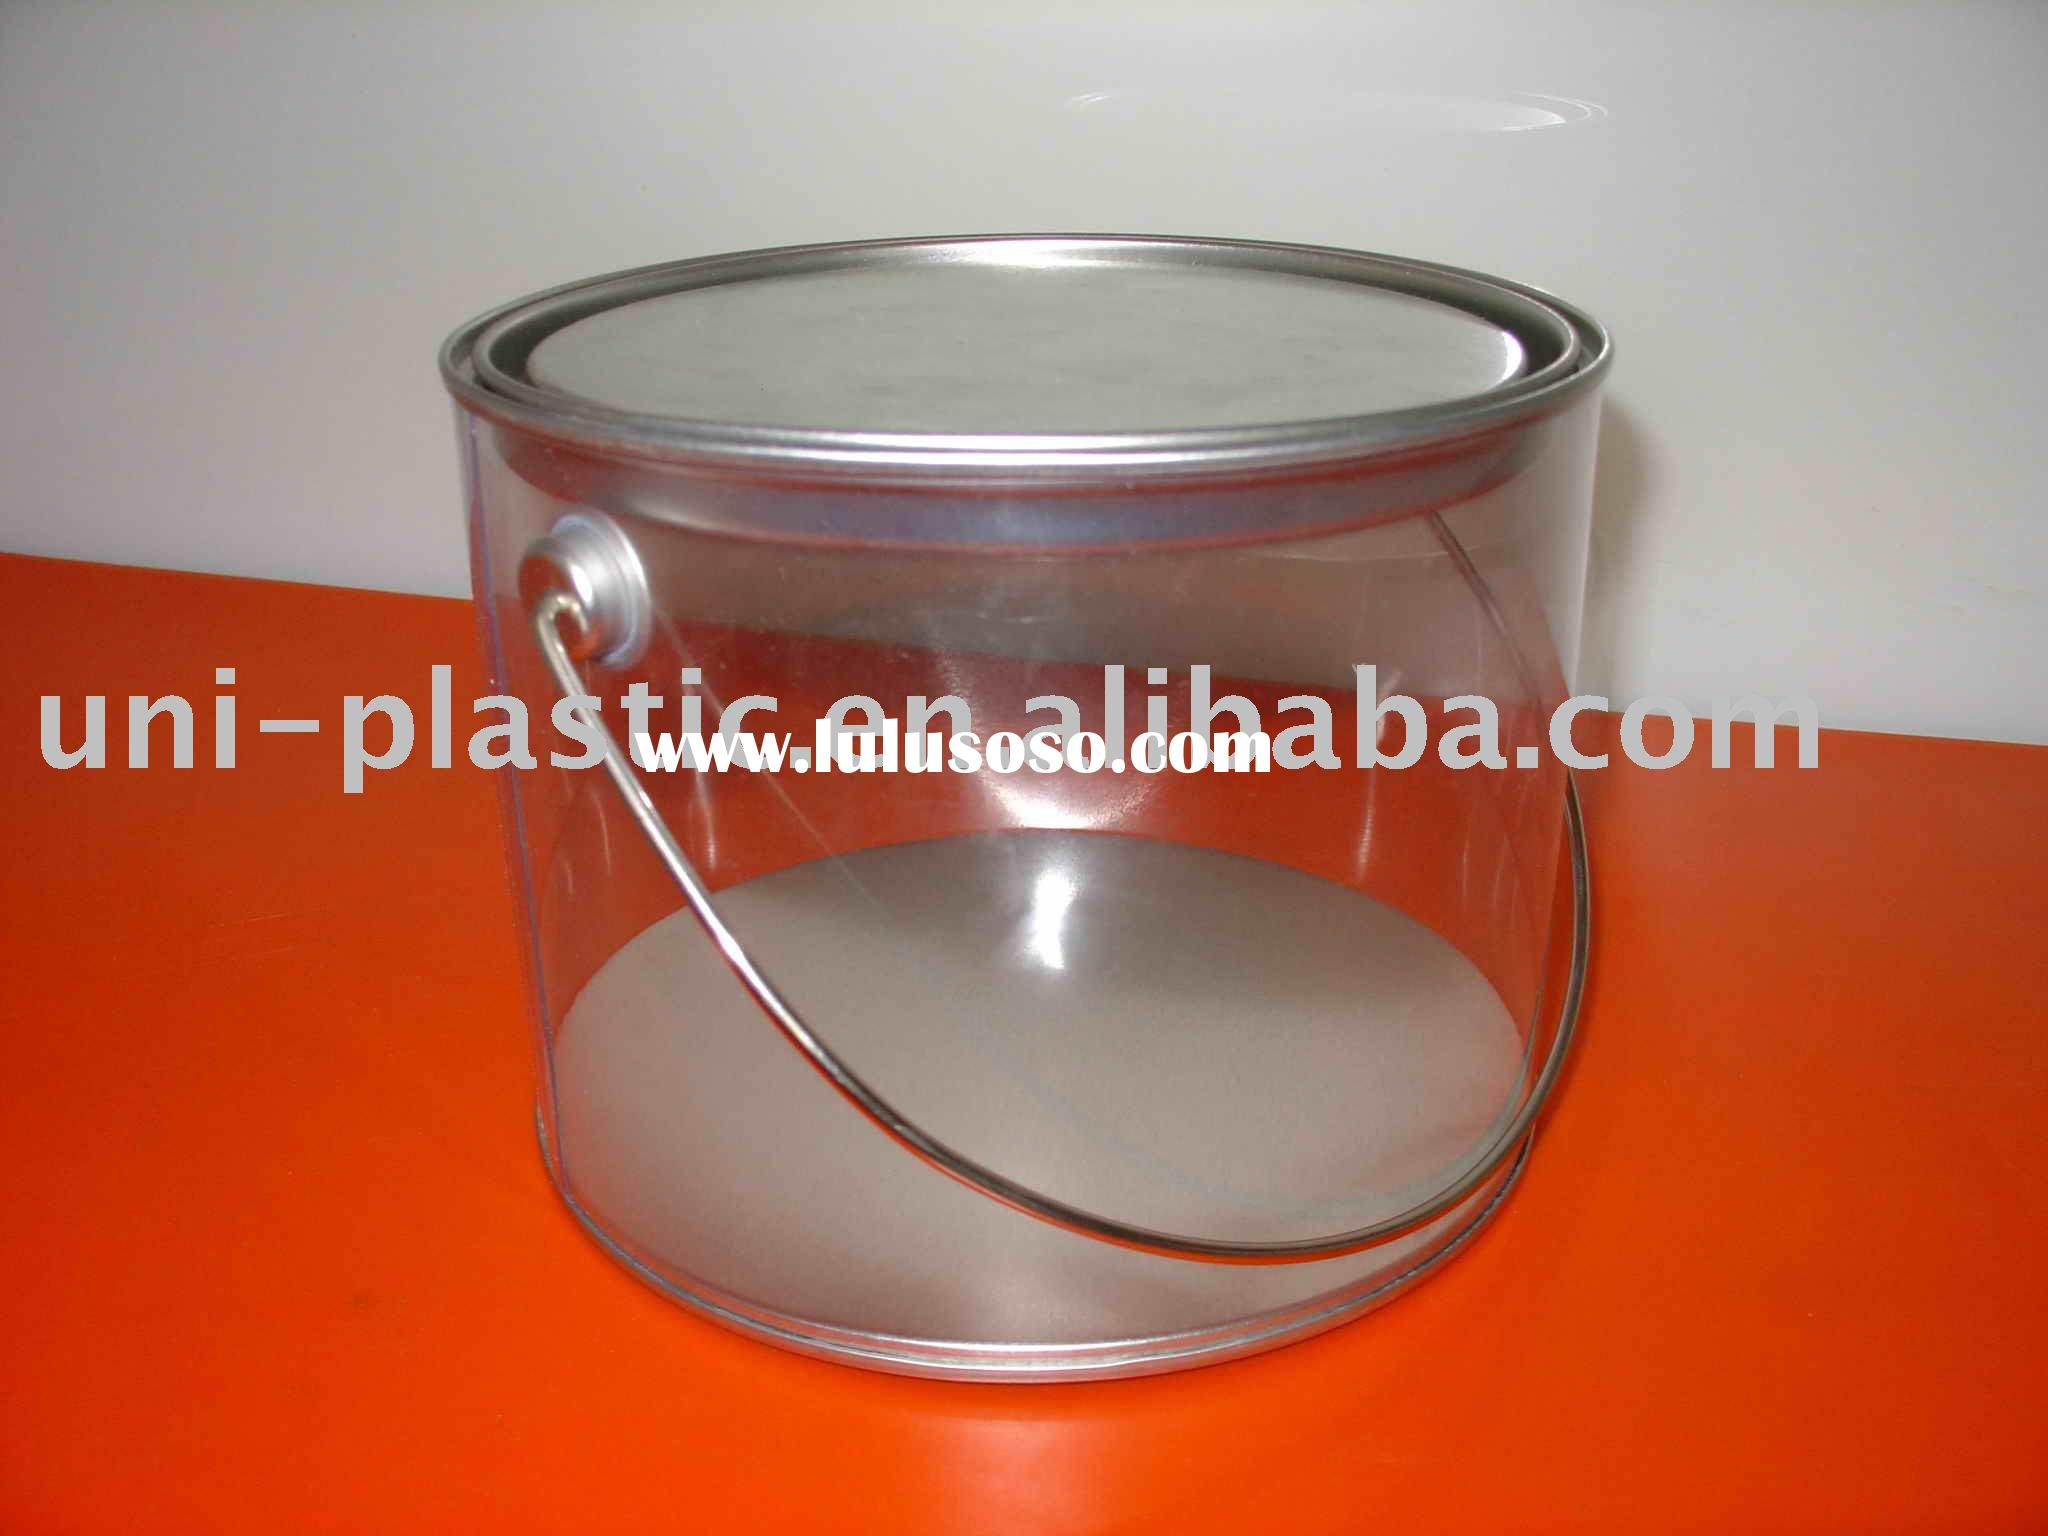 bucket 5 gallon buckets http 5gallonbuckets org clear plastic bucket